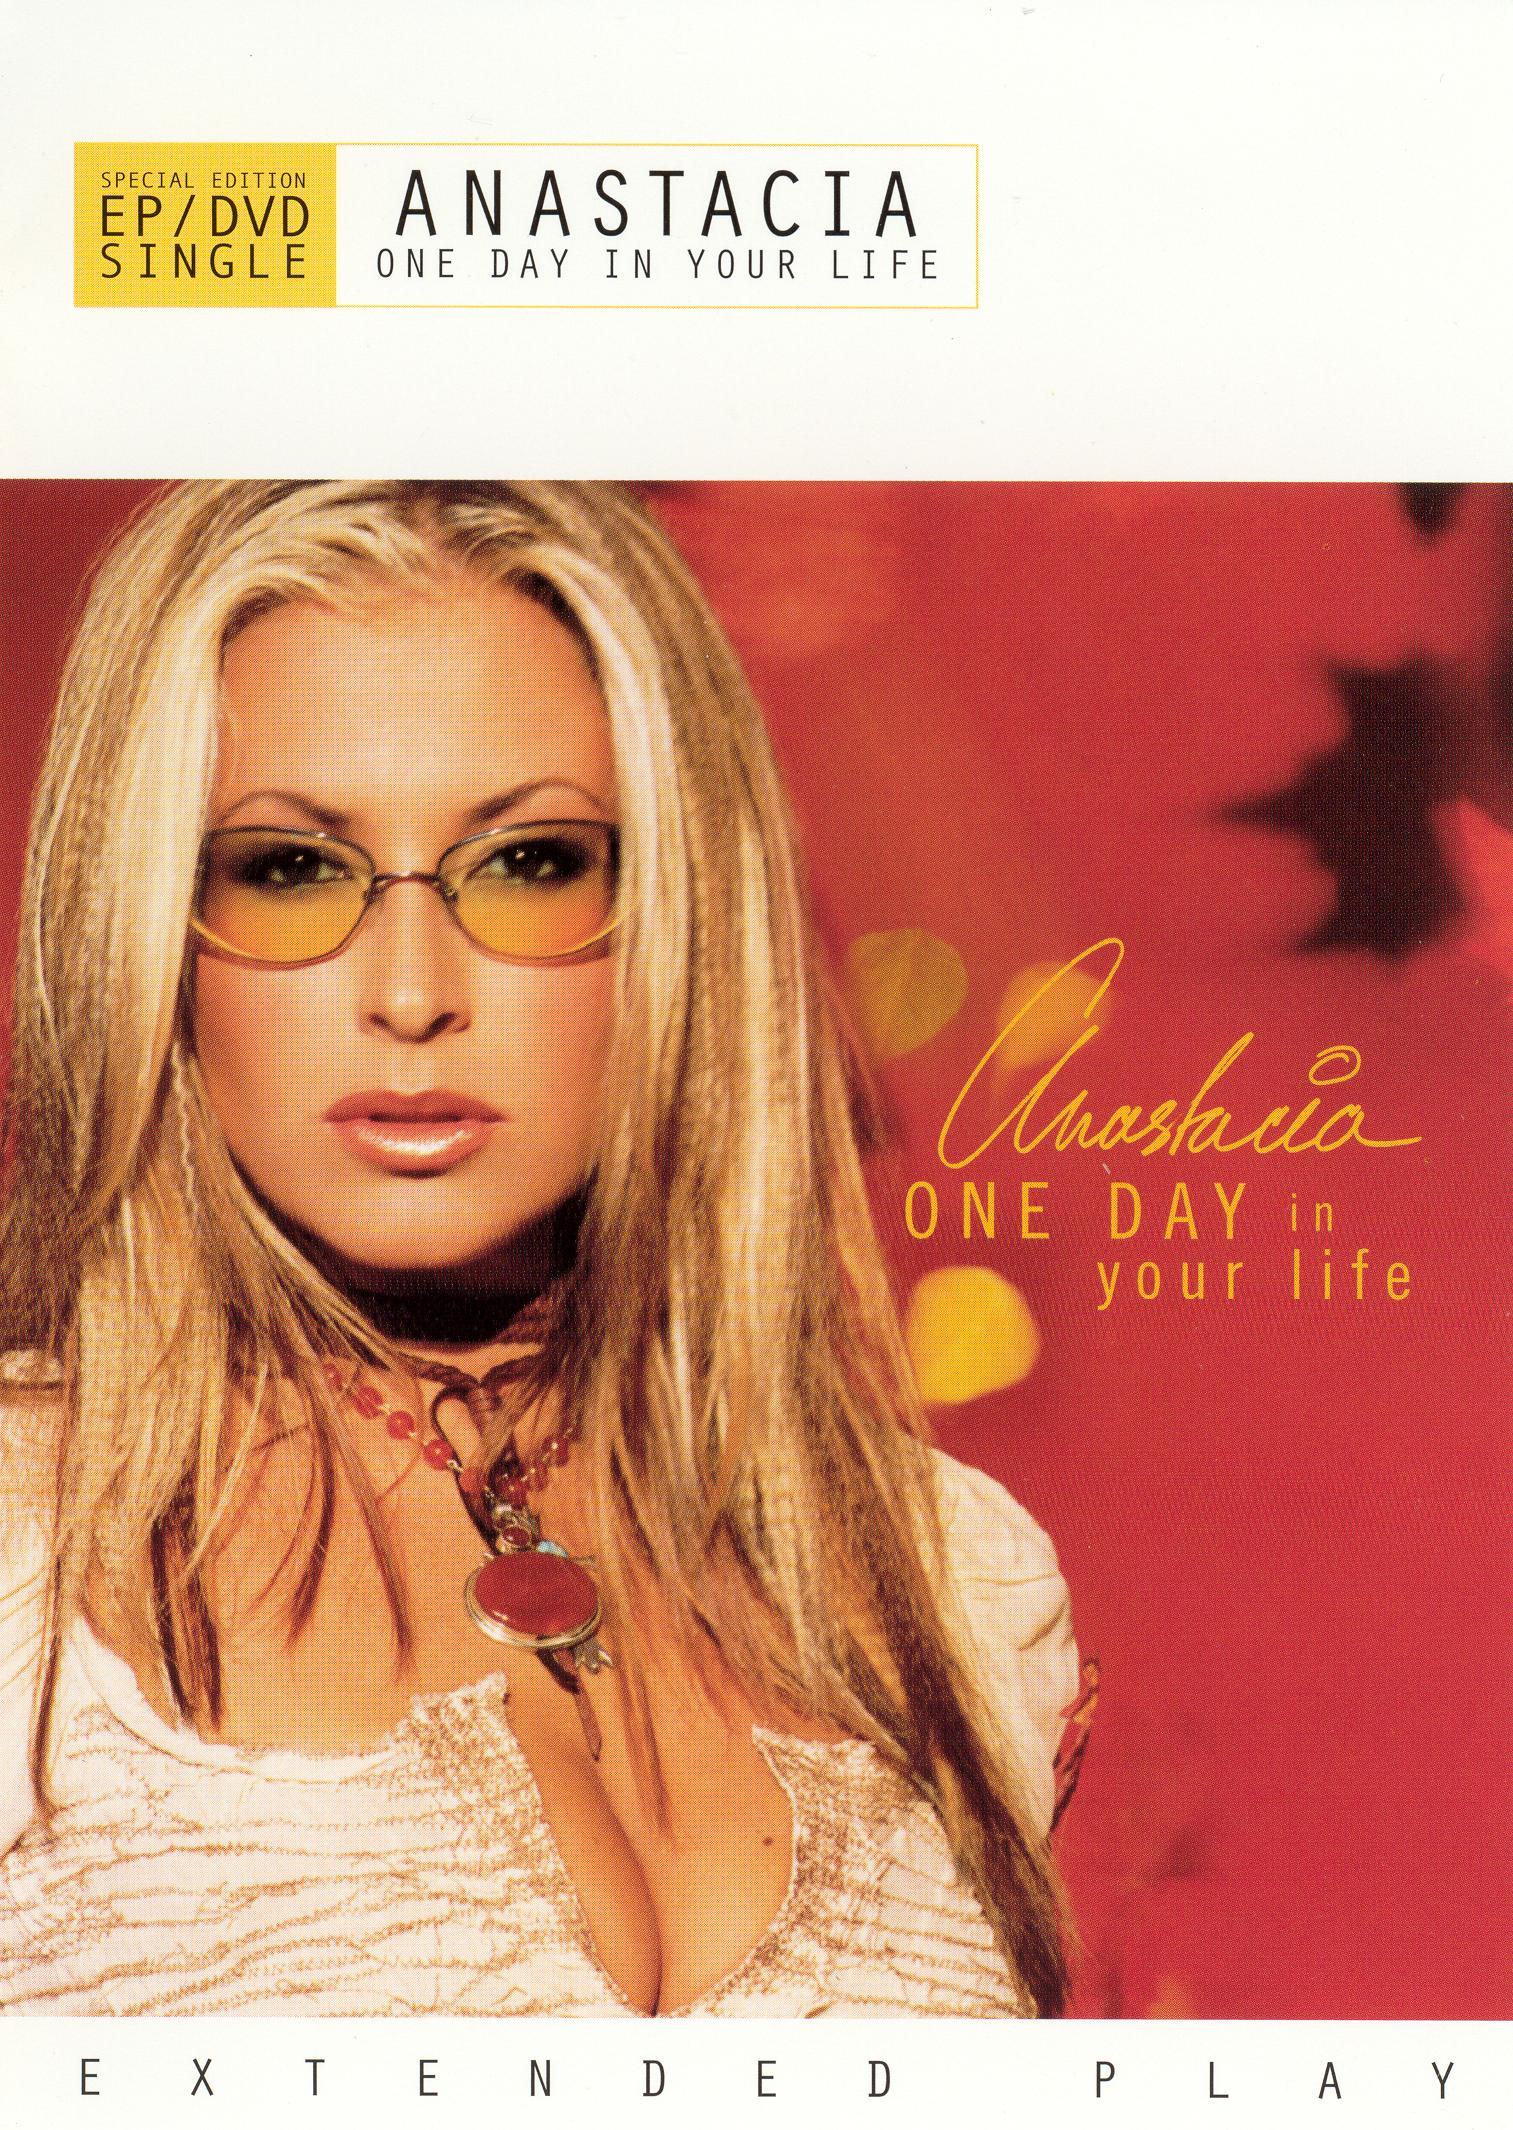 Anastacia: One Day in Your Life  [DVD Single]